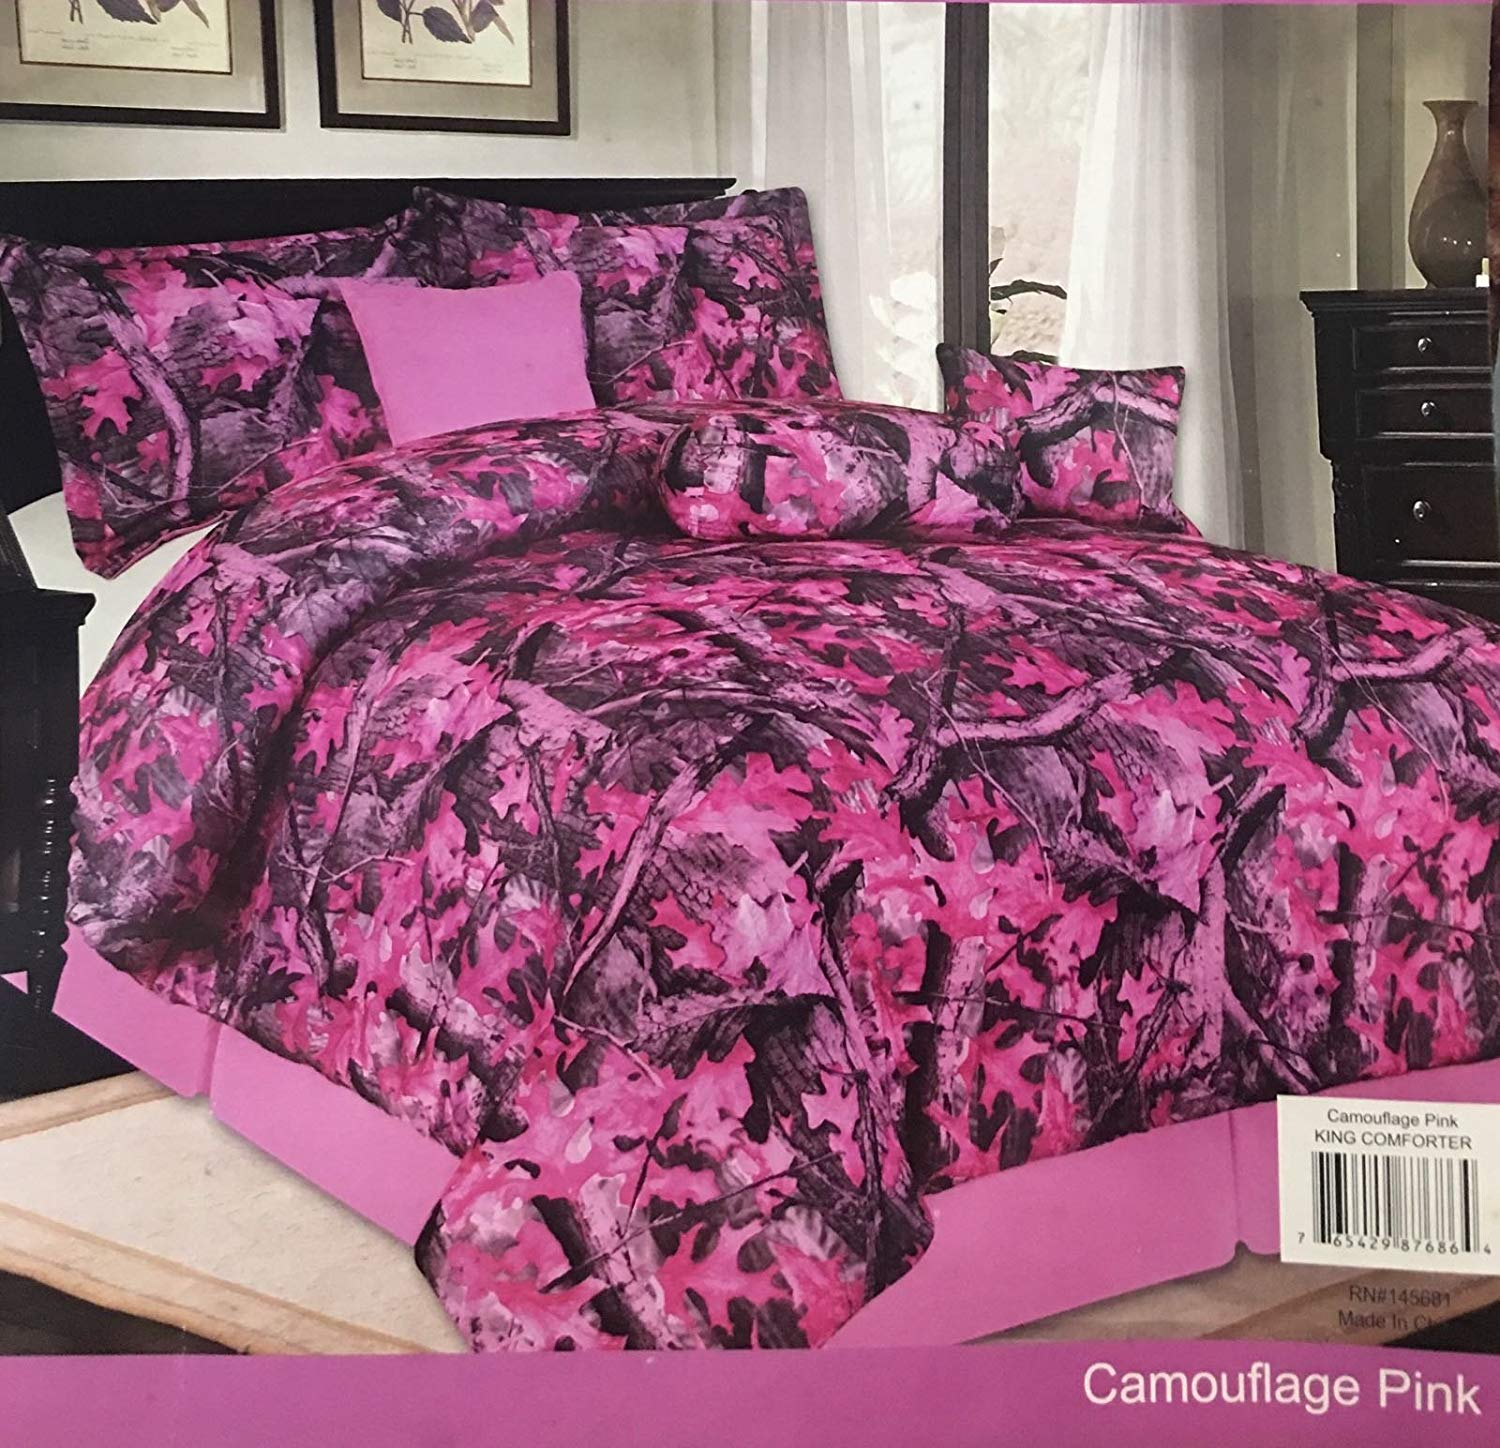 Unidos Collection 7pc Pink Camouflage Comforter Set Brown Forest Green in King Queen & Twin (Pink, King)